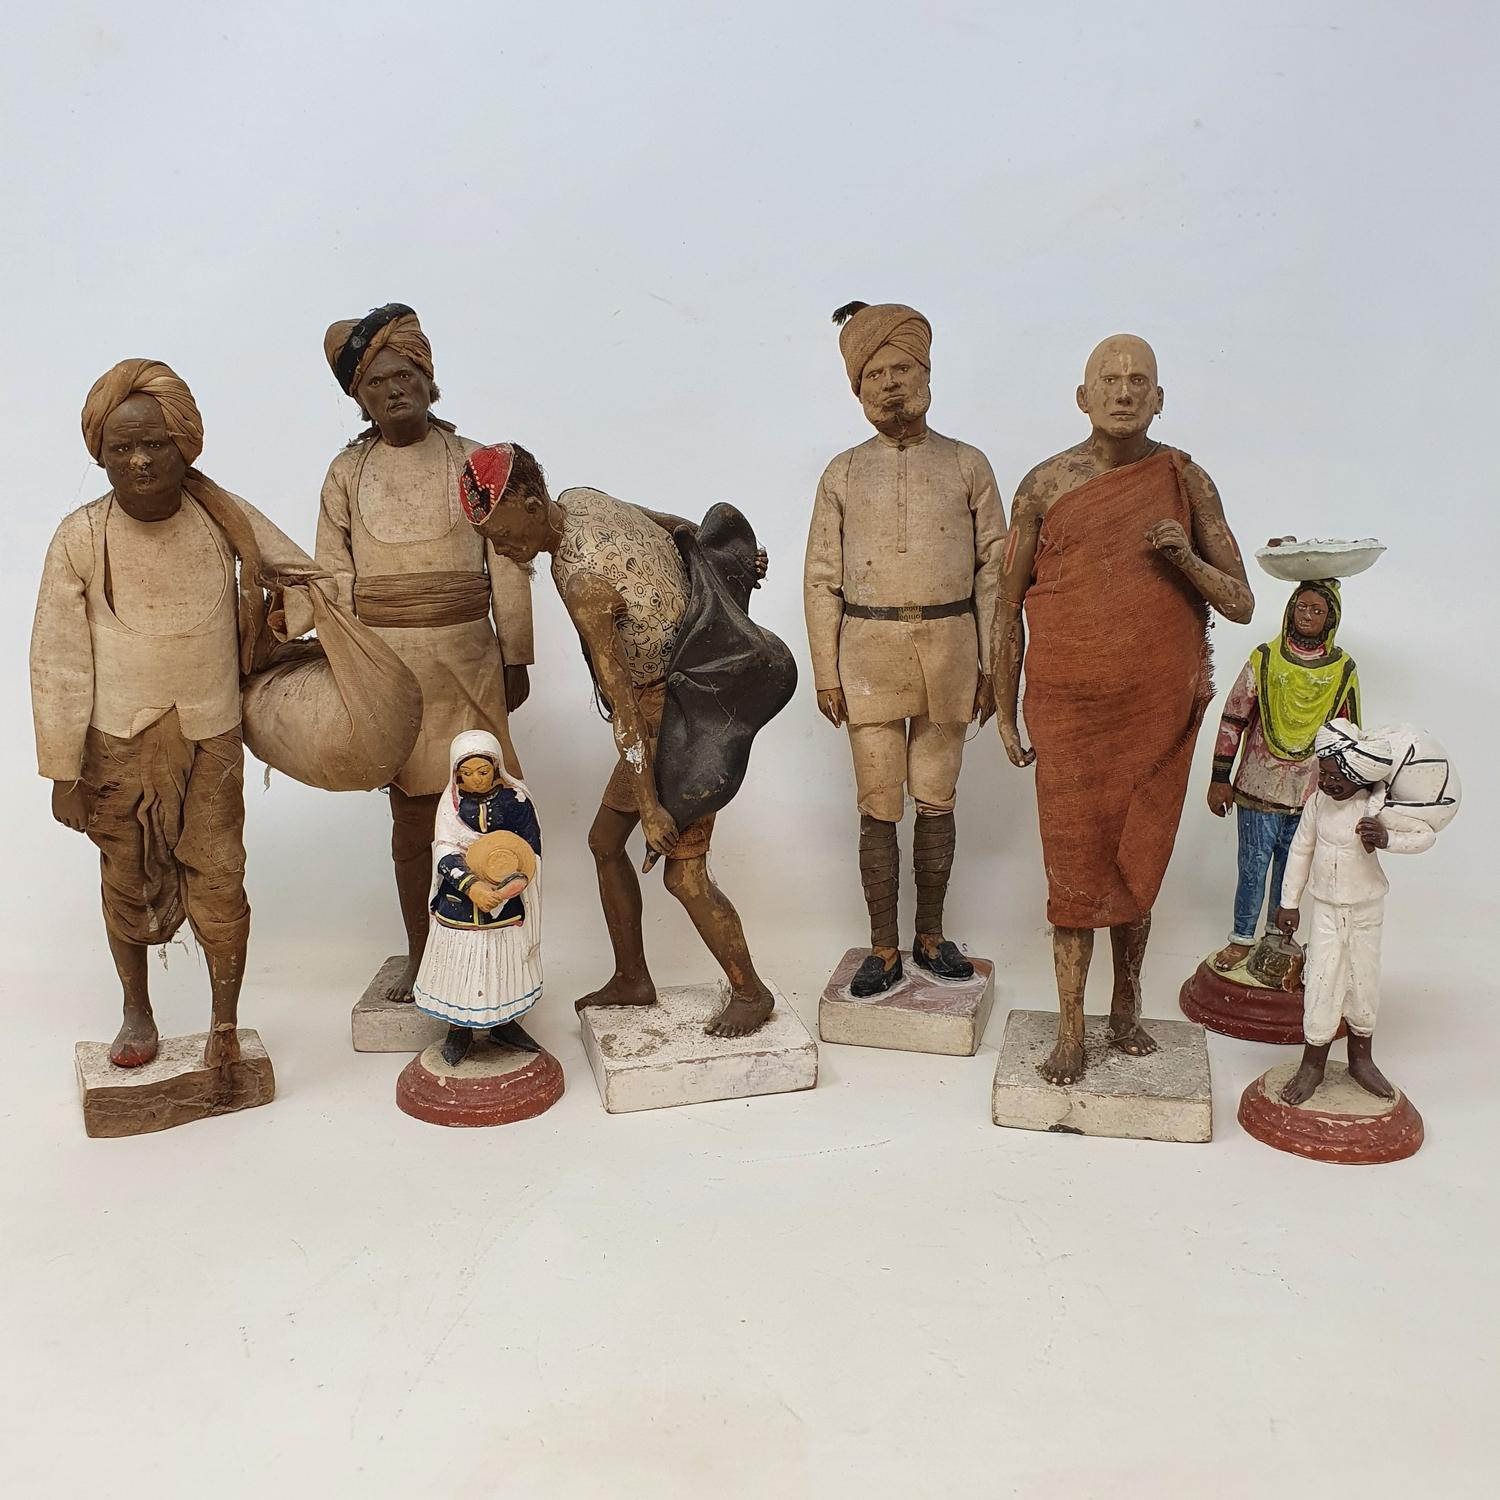 A set of five Indian composition figures, 23 cm high, and other figures (box) - Image 3 of 3